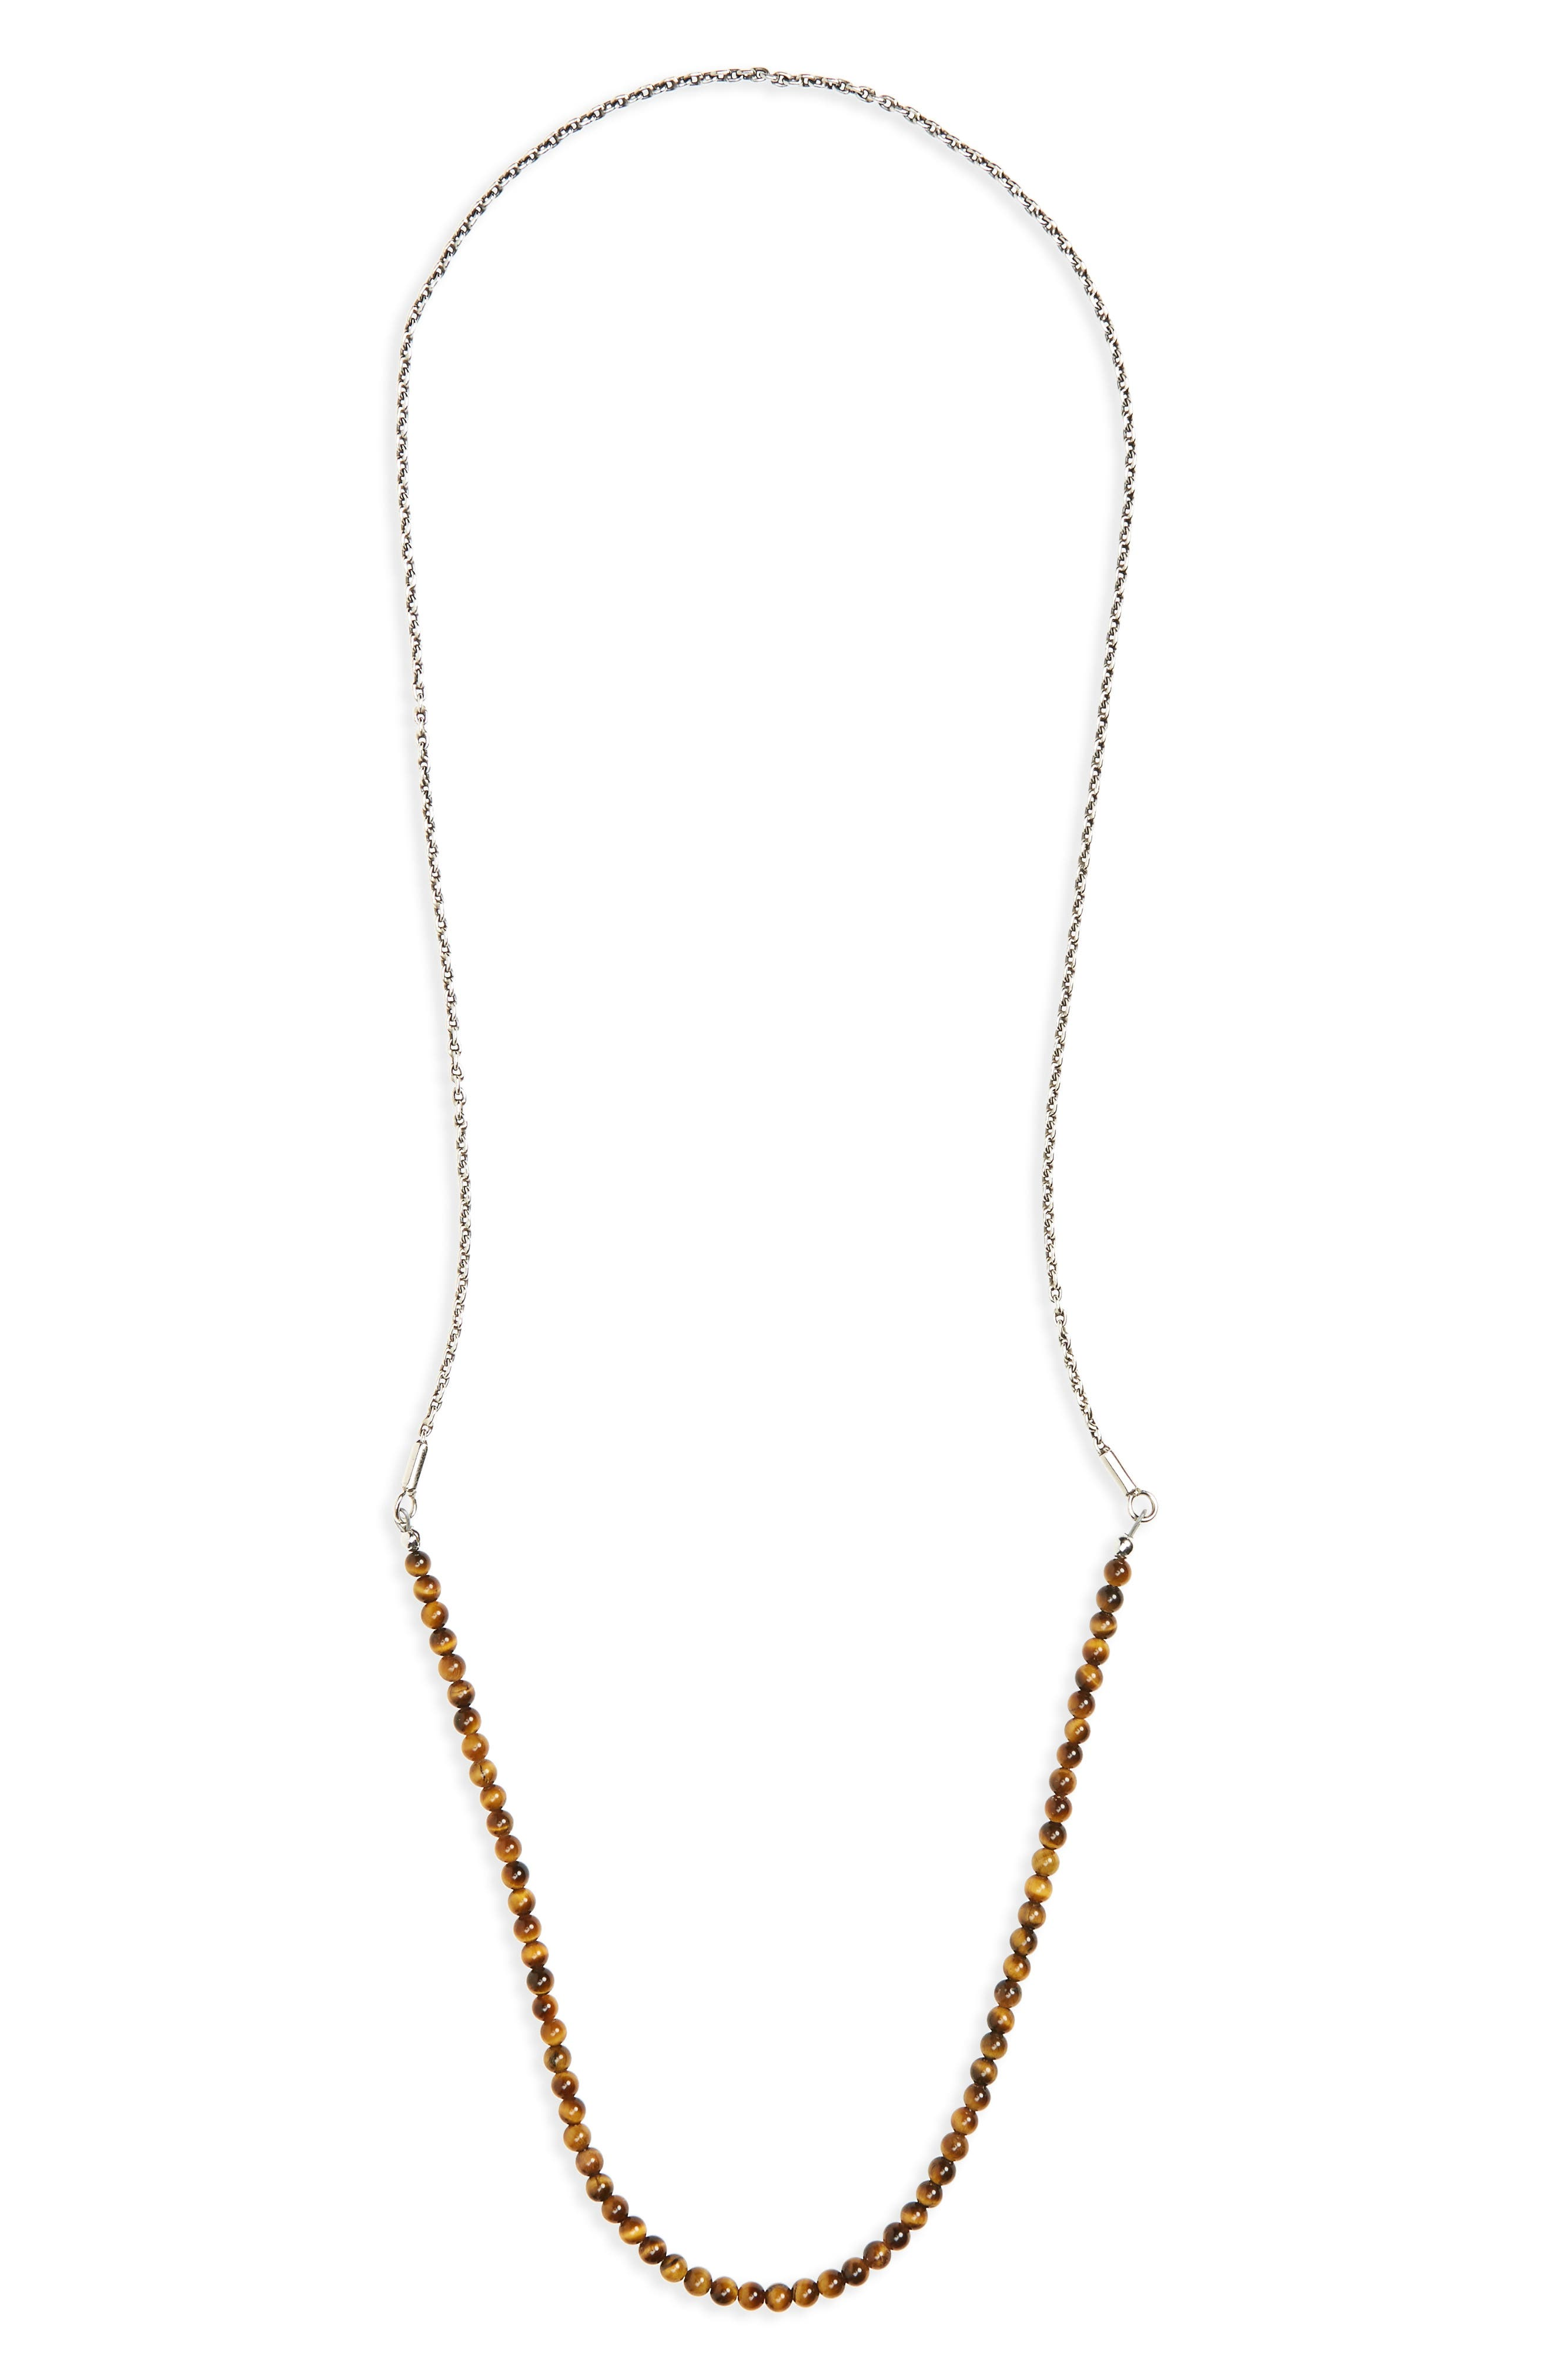 Stone & Sterling Silver Necklace,                         Main,                         color, Tiger Eye